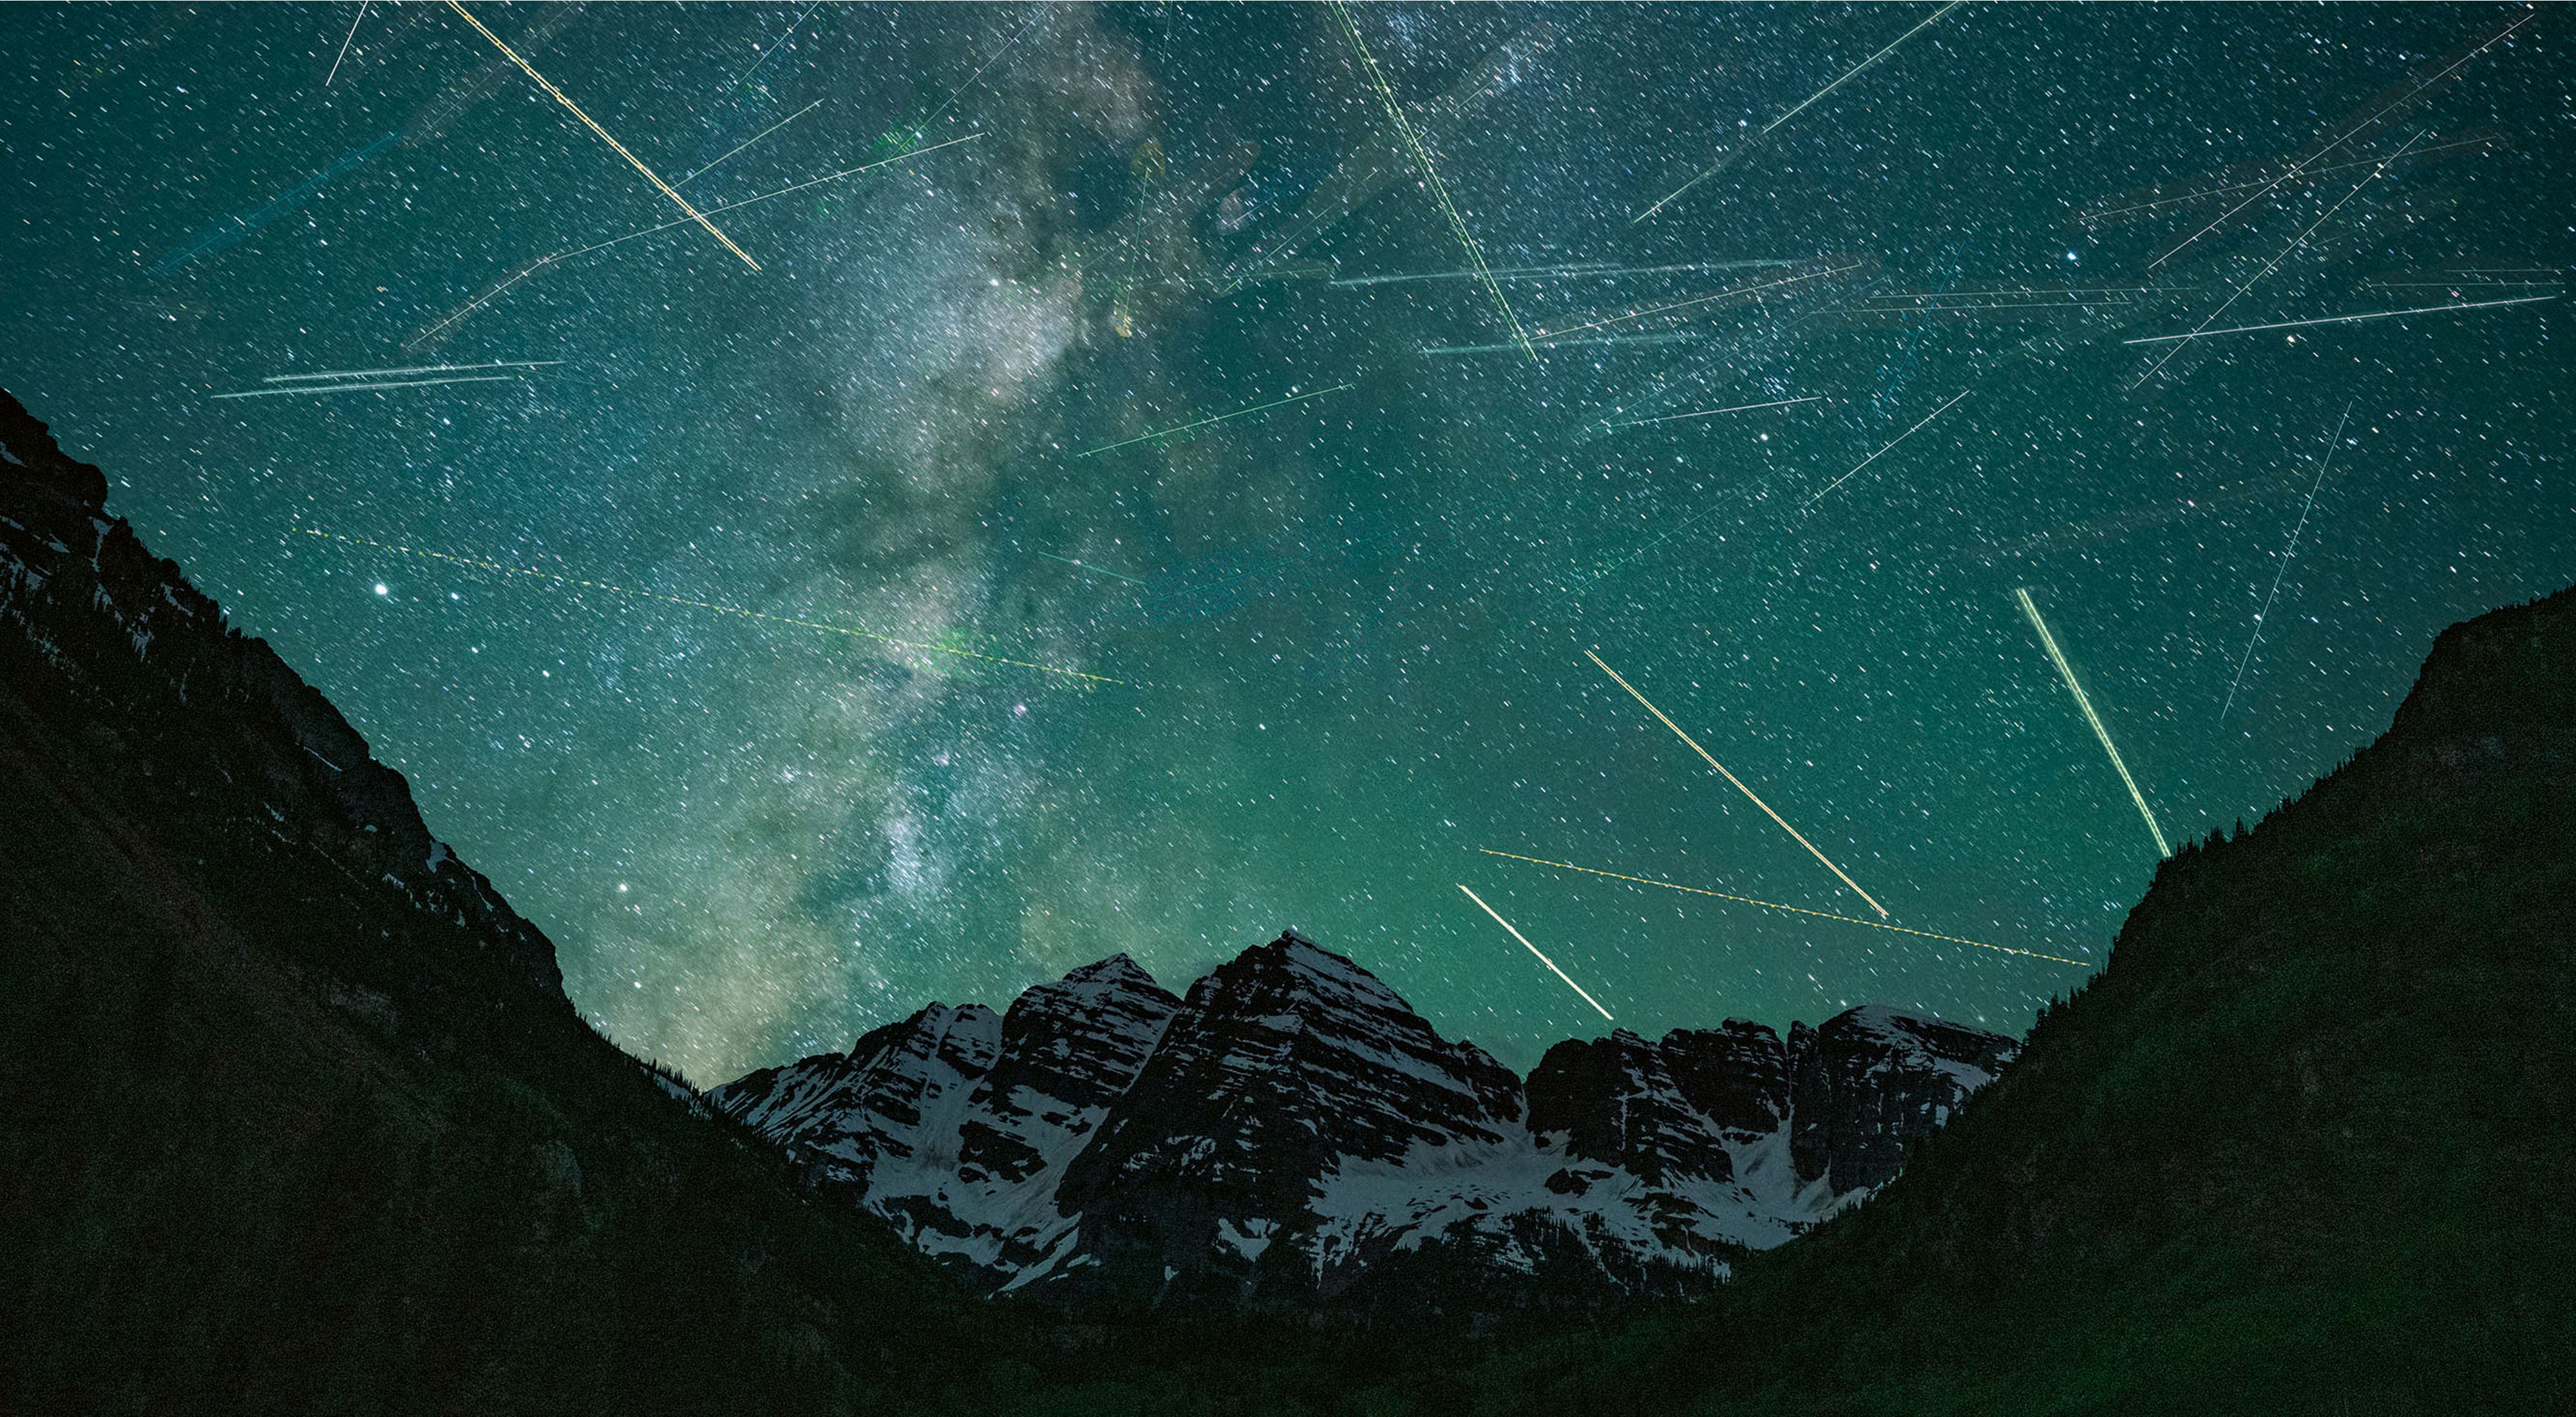 blue night sky with thousands of blurred stars over dark mountains